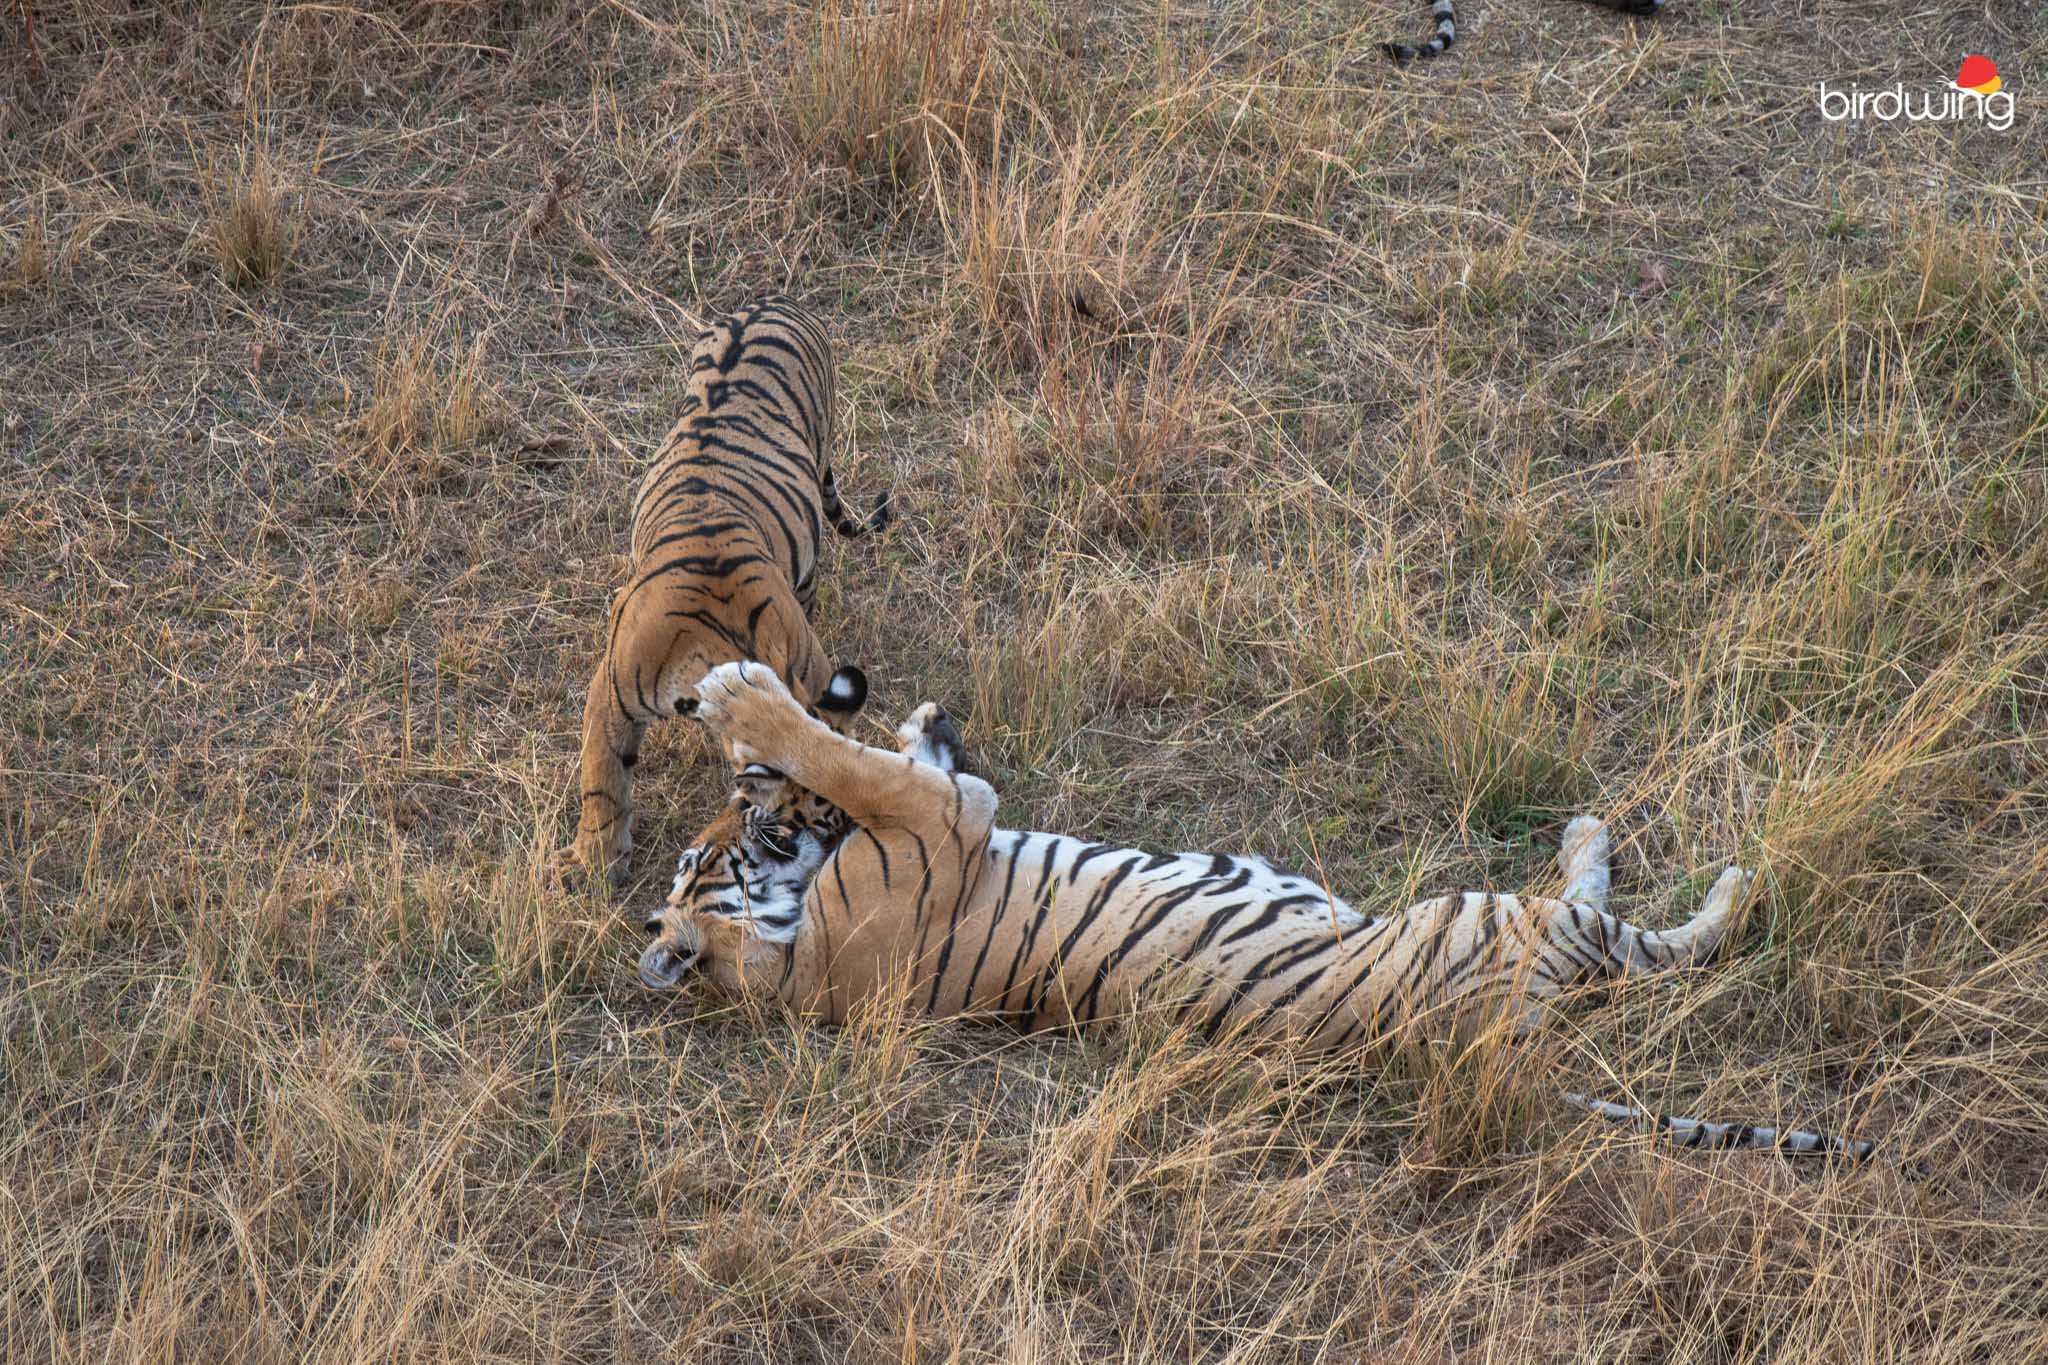 Krishna and her cub playing